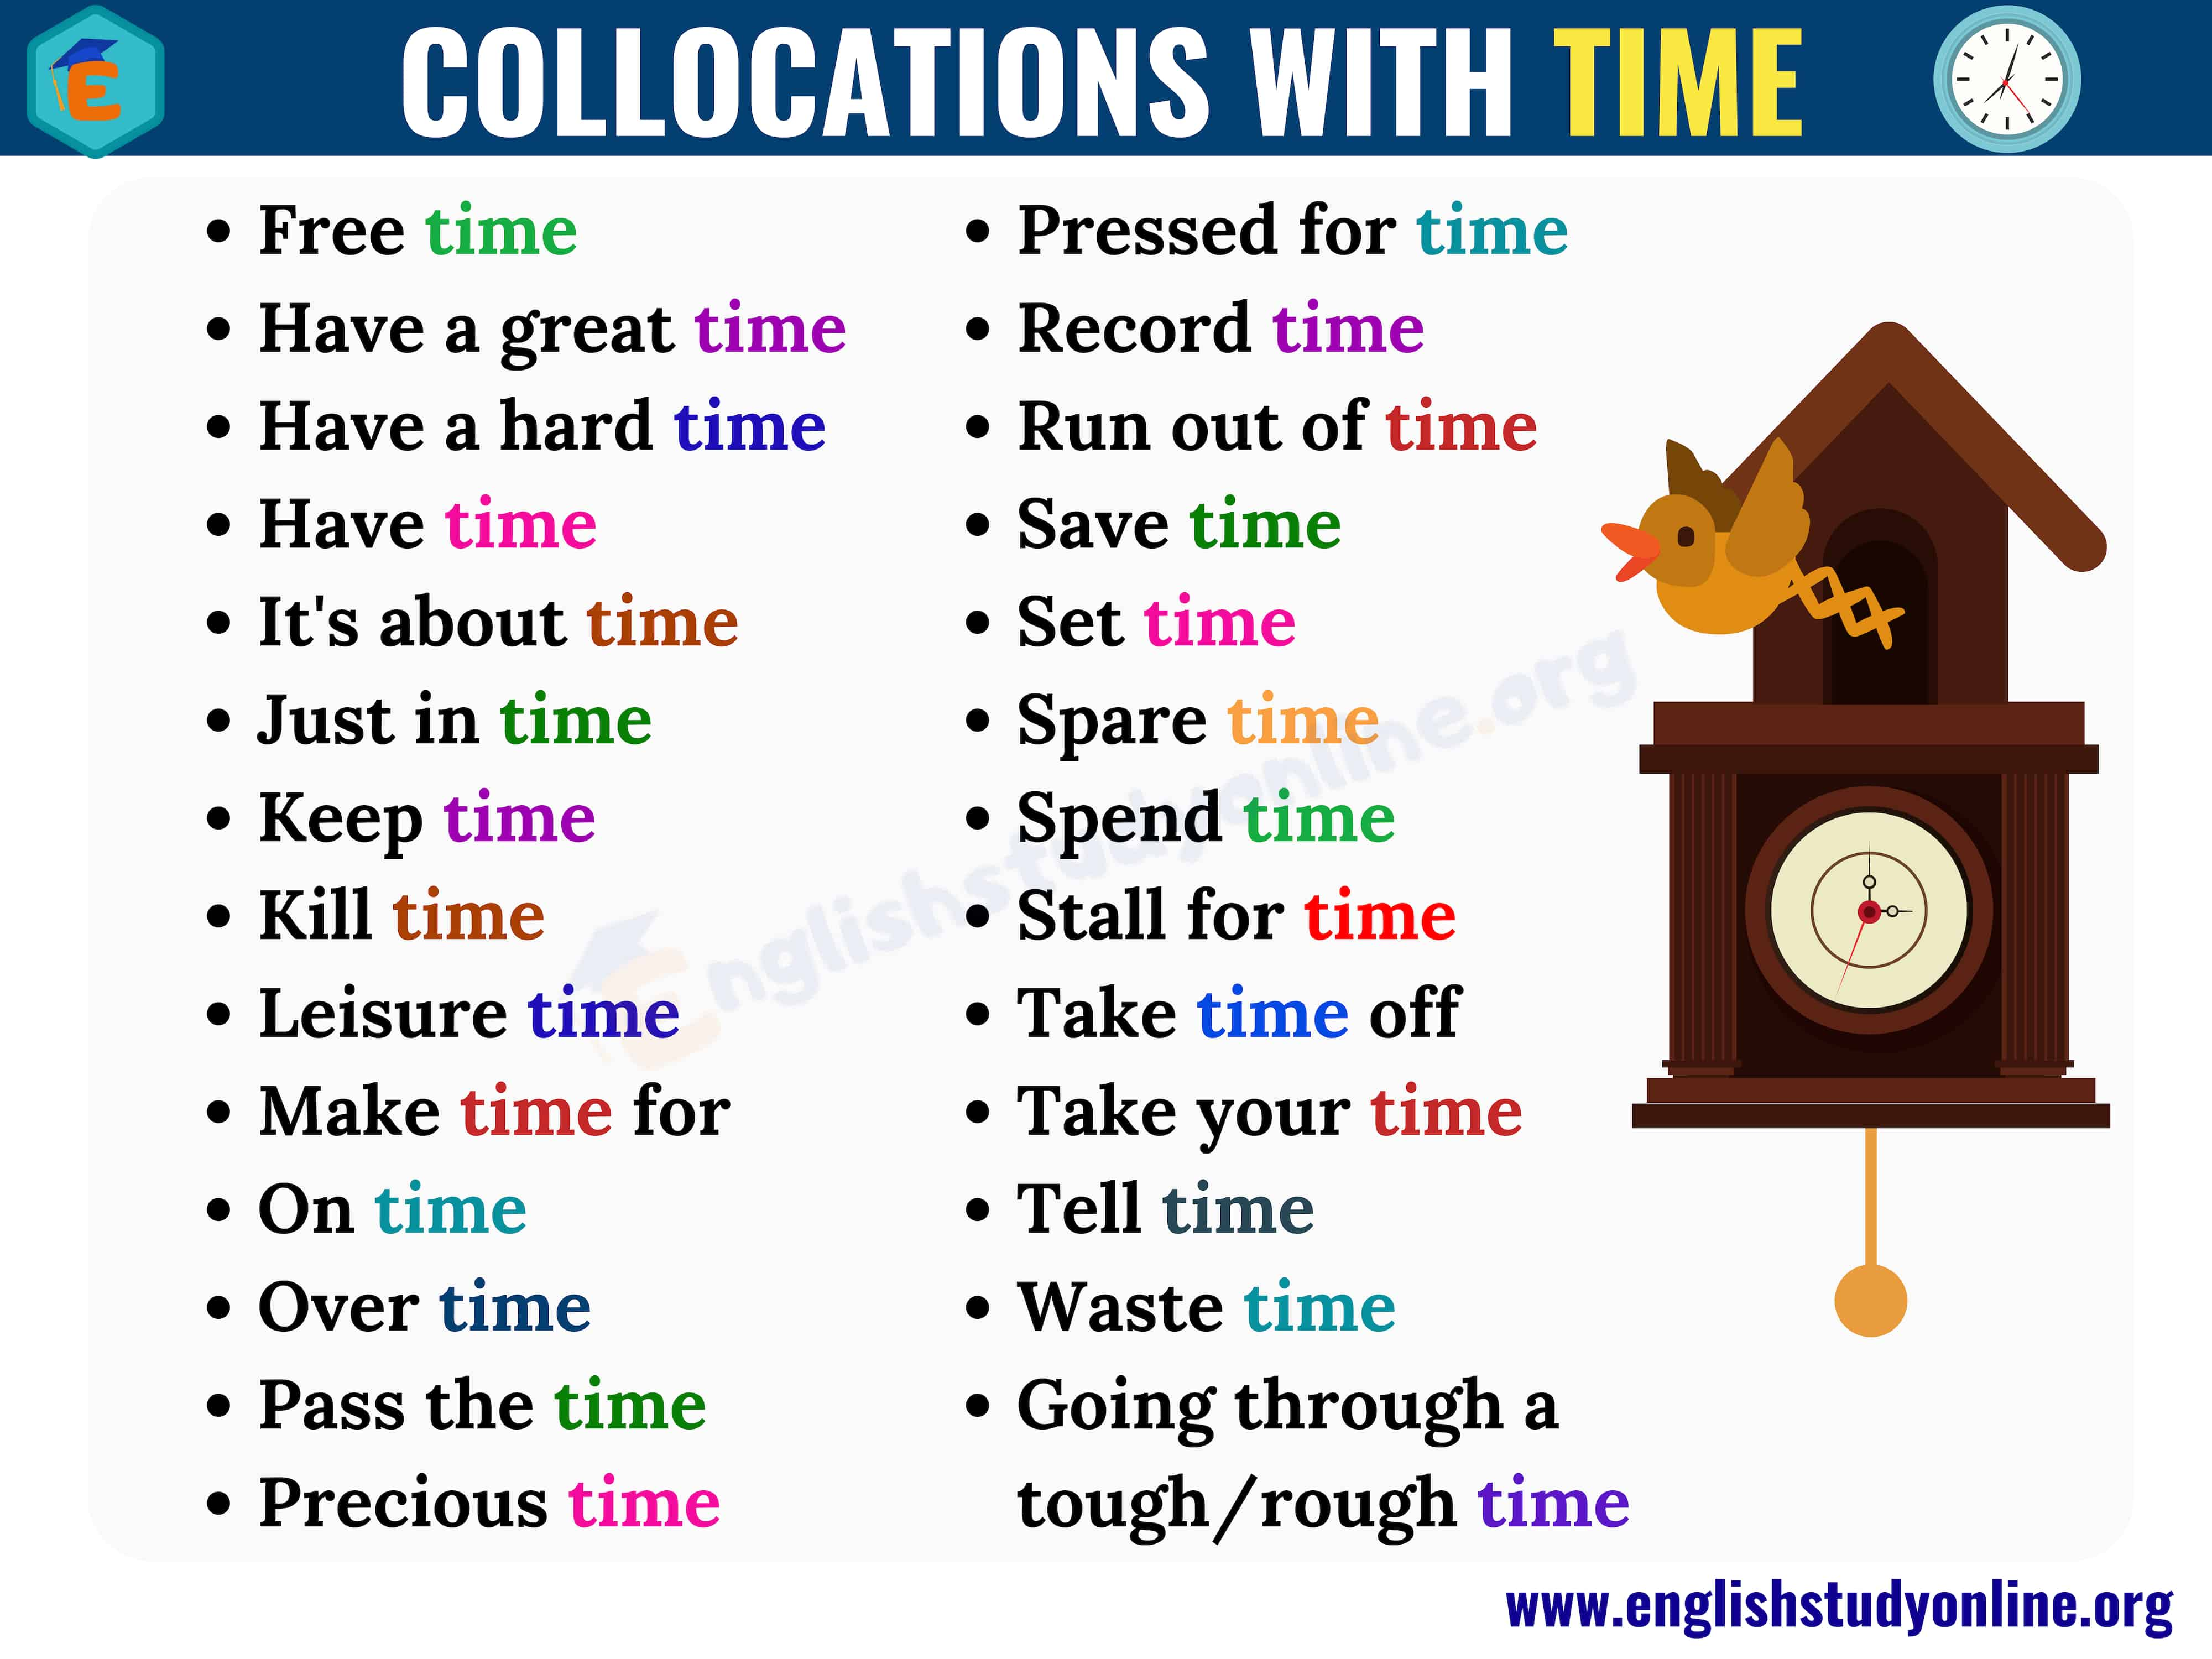 collocations with time